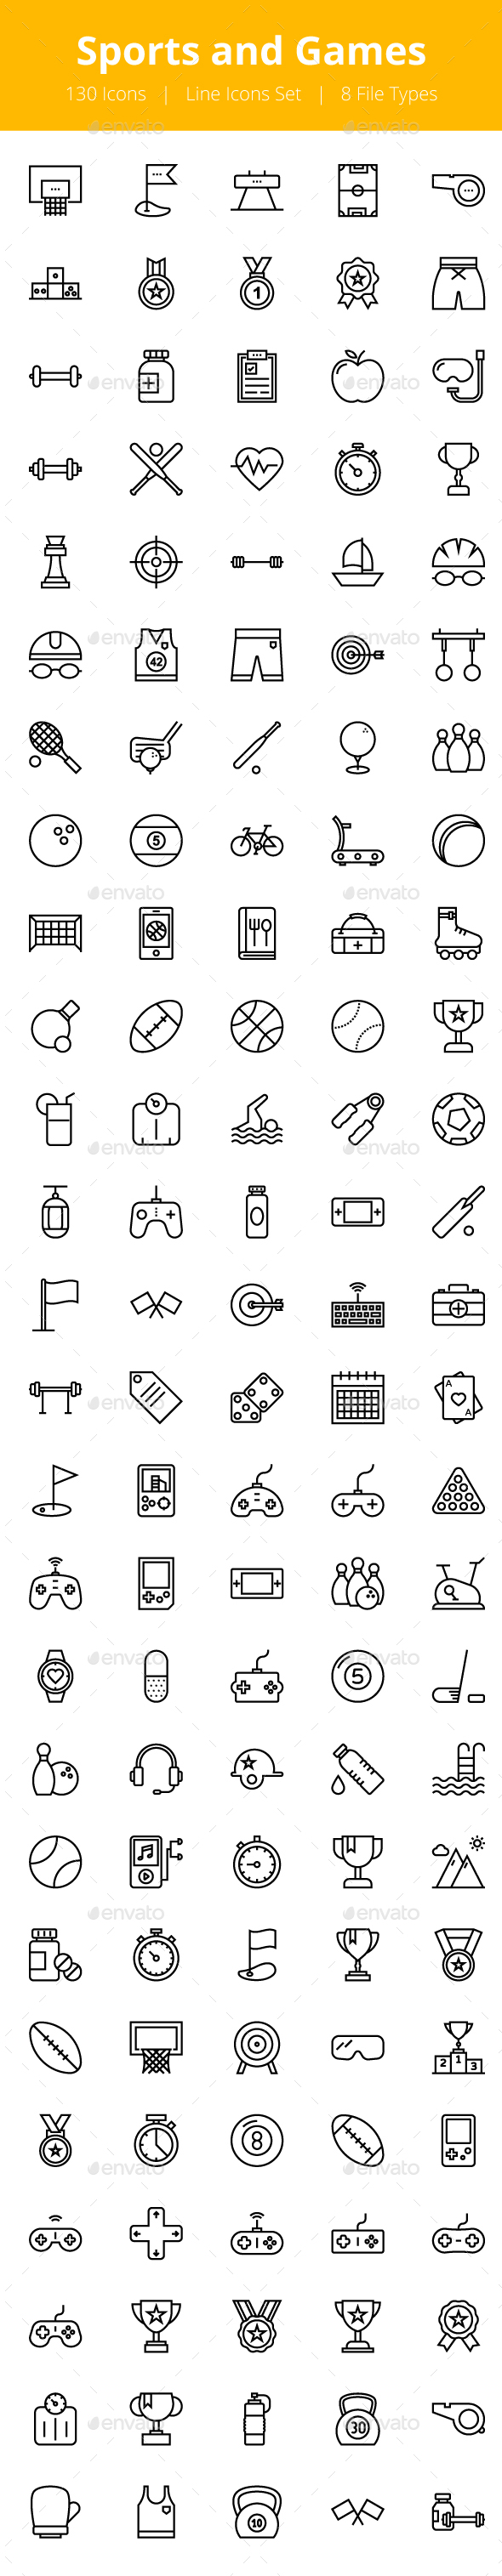 125+ Sports and Games Line Icons - Icons